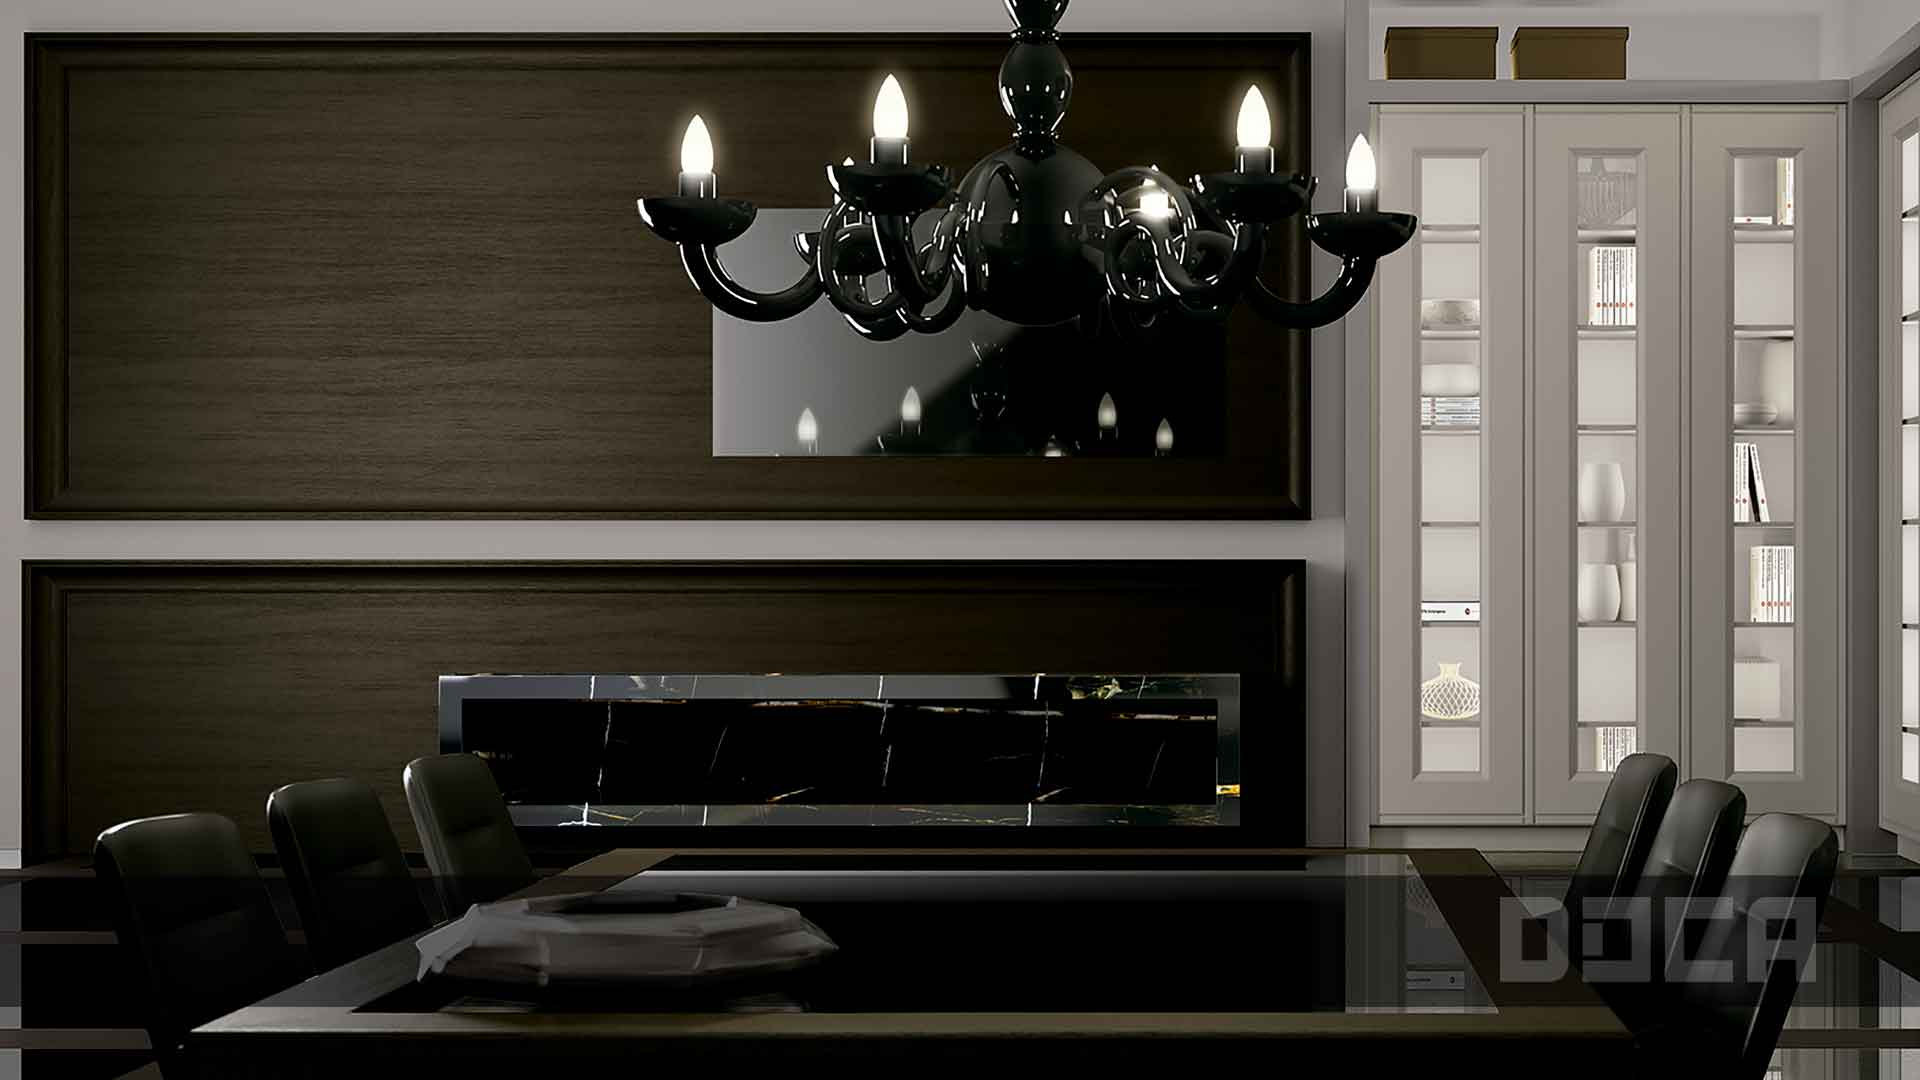 timeless wieland k chen einrichtung. Black Bedroom Furniture Sets. Home Design Ideas